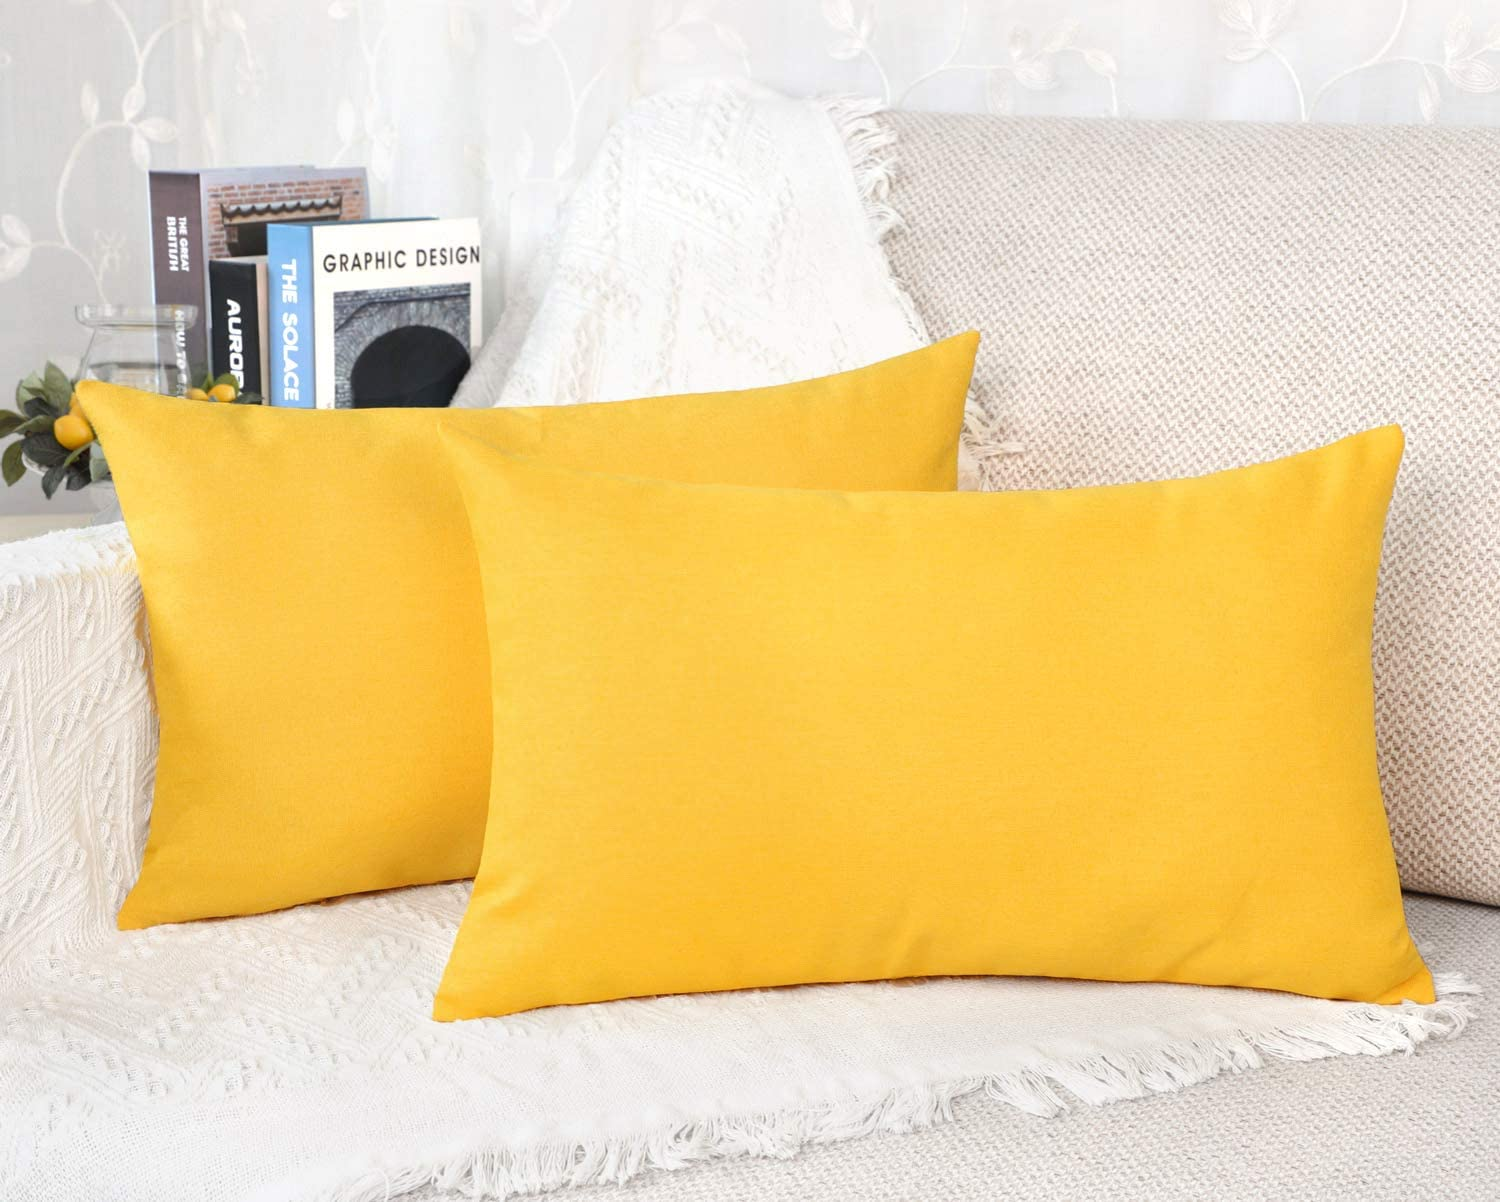 4TH Emotion Outdoor Waterproof Lumbar Pillow Covers Garden Cushion Case for Patio Couch Sofa Polyester Home Decoration Pack of 2, 12 X 20 Inches Lemon Yellow